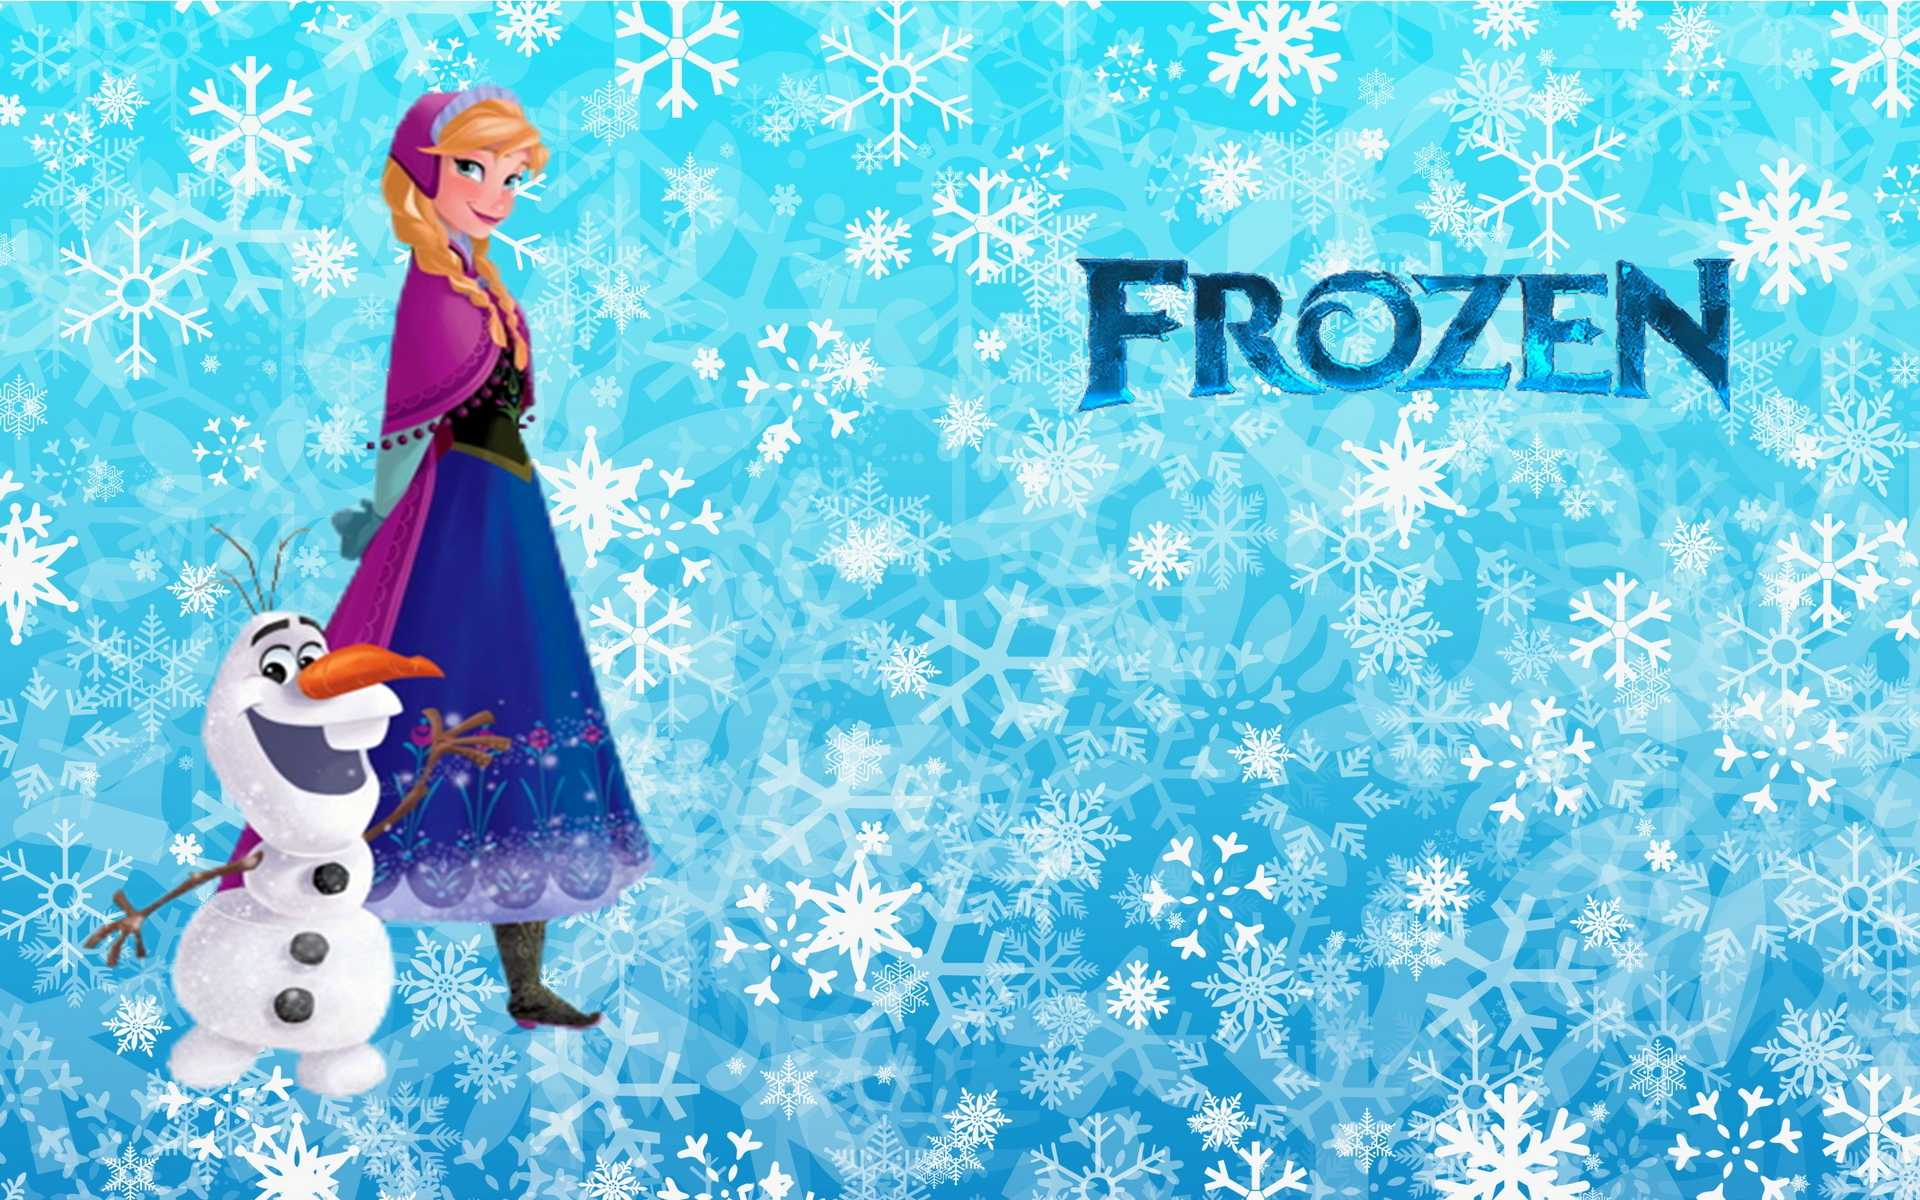 Frozen images Frozen Wallpaper wallpaper photos 35776839 1920x1200